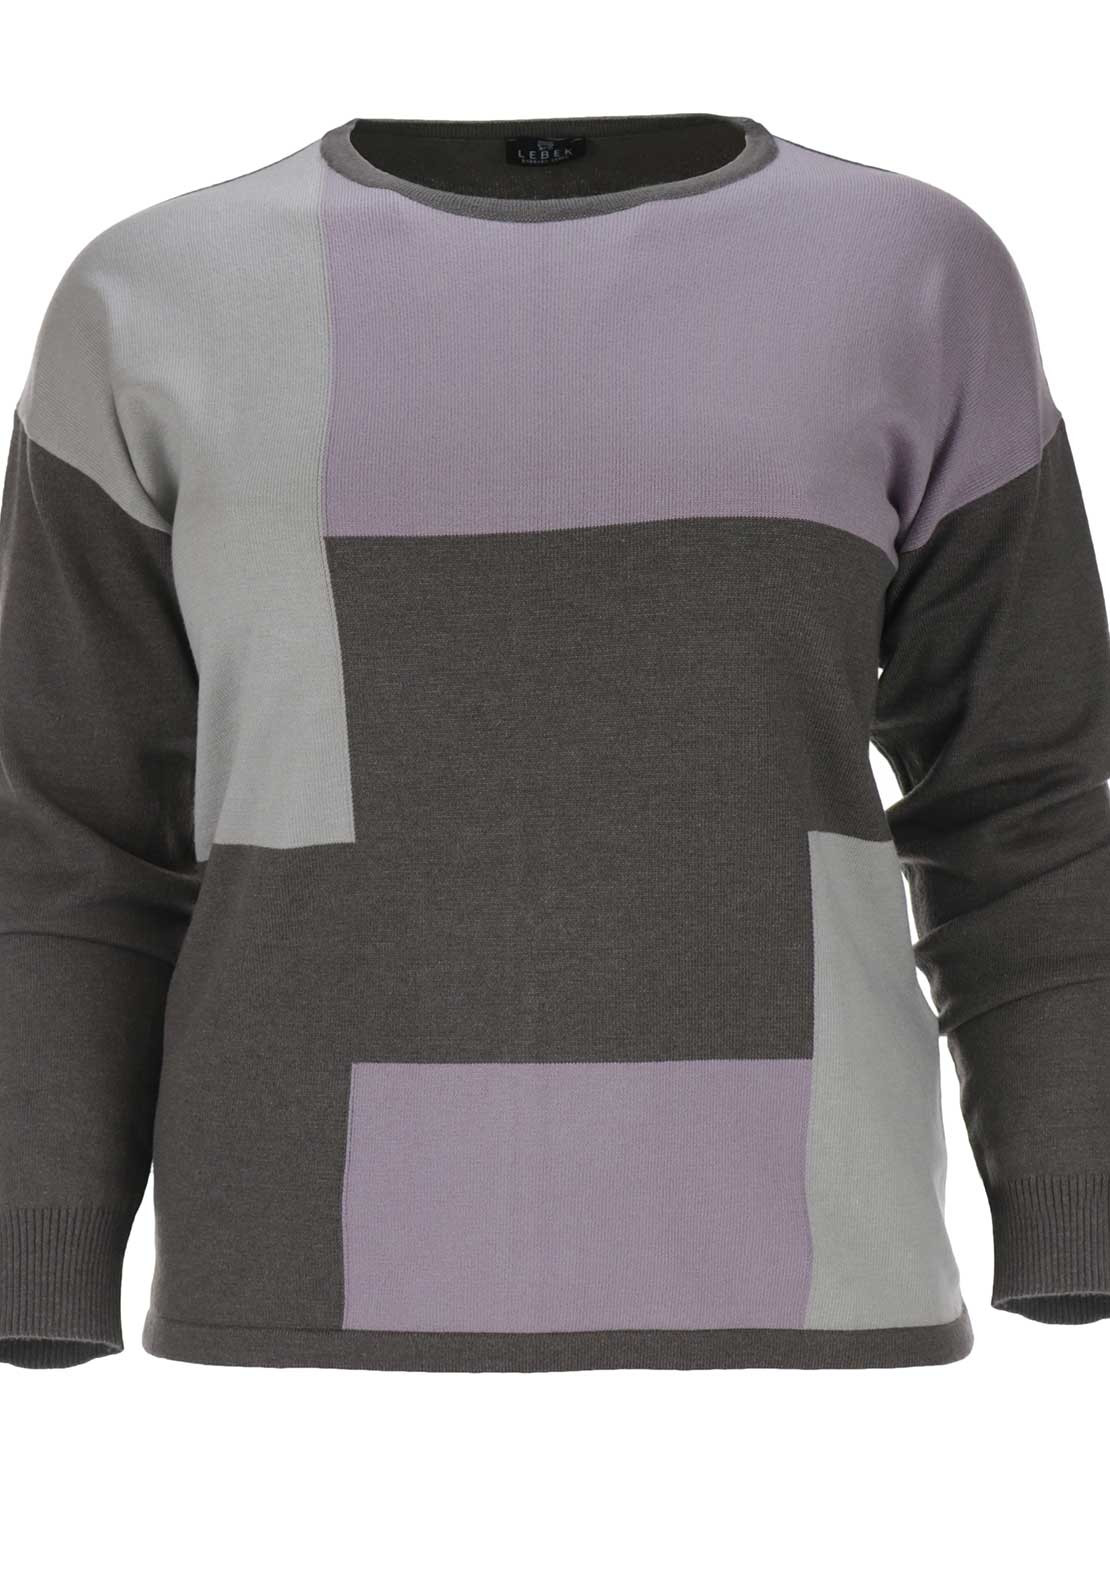 Lebek Geometric Print Sweater Jumper, Purple and Grey